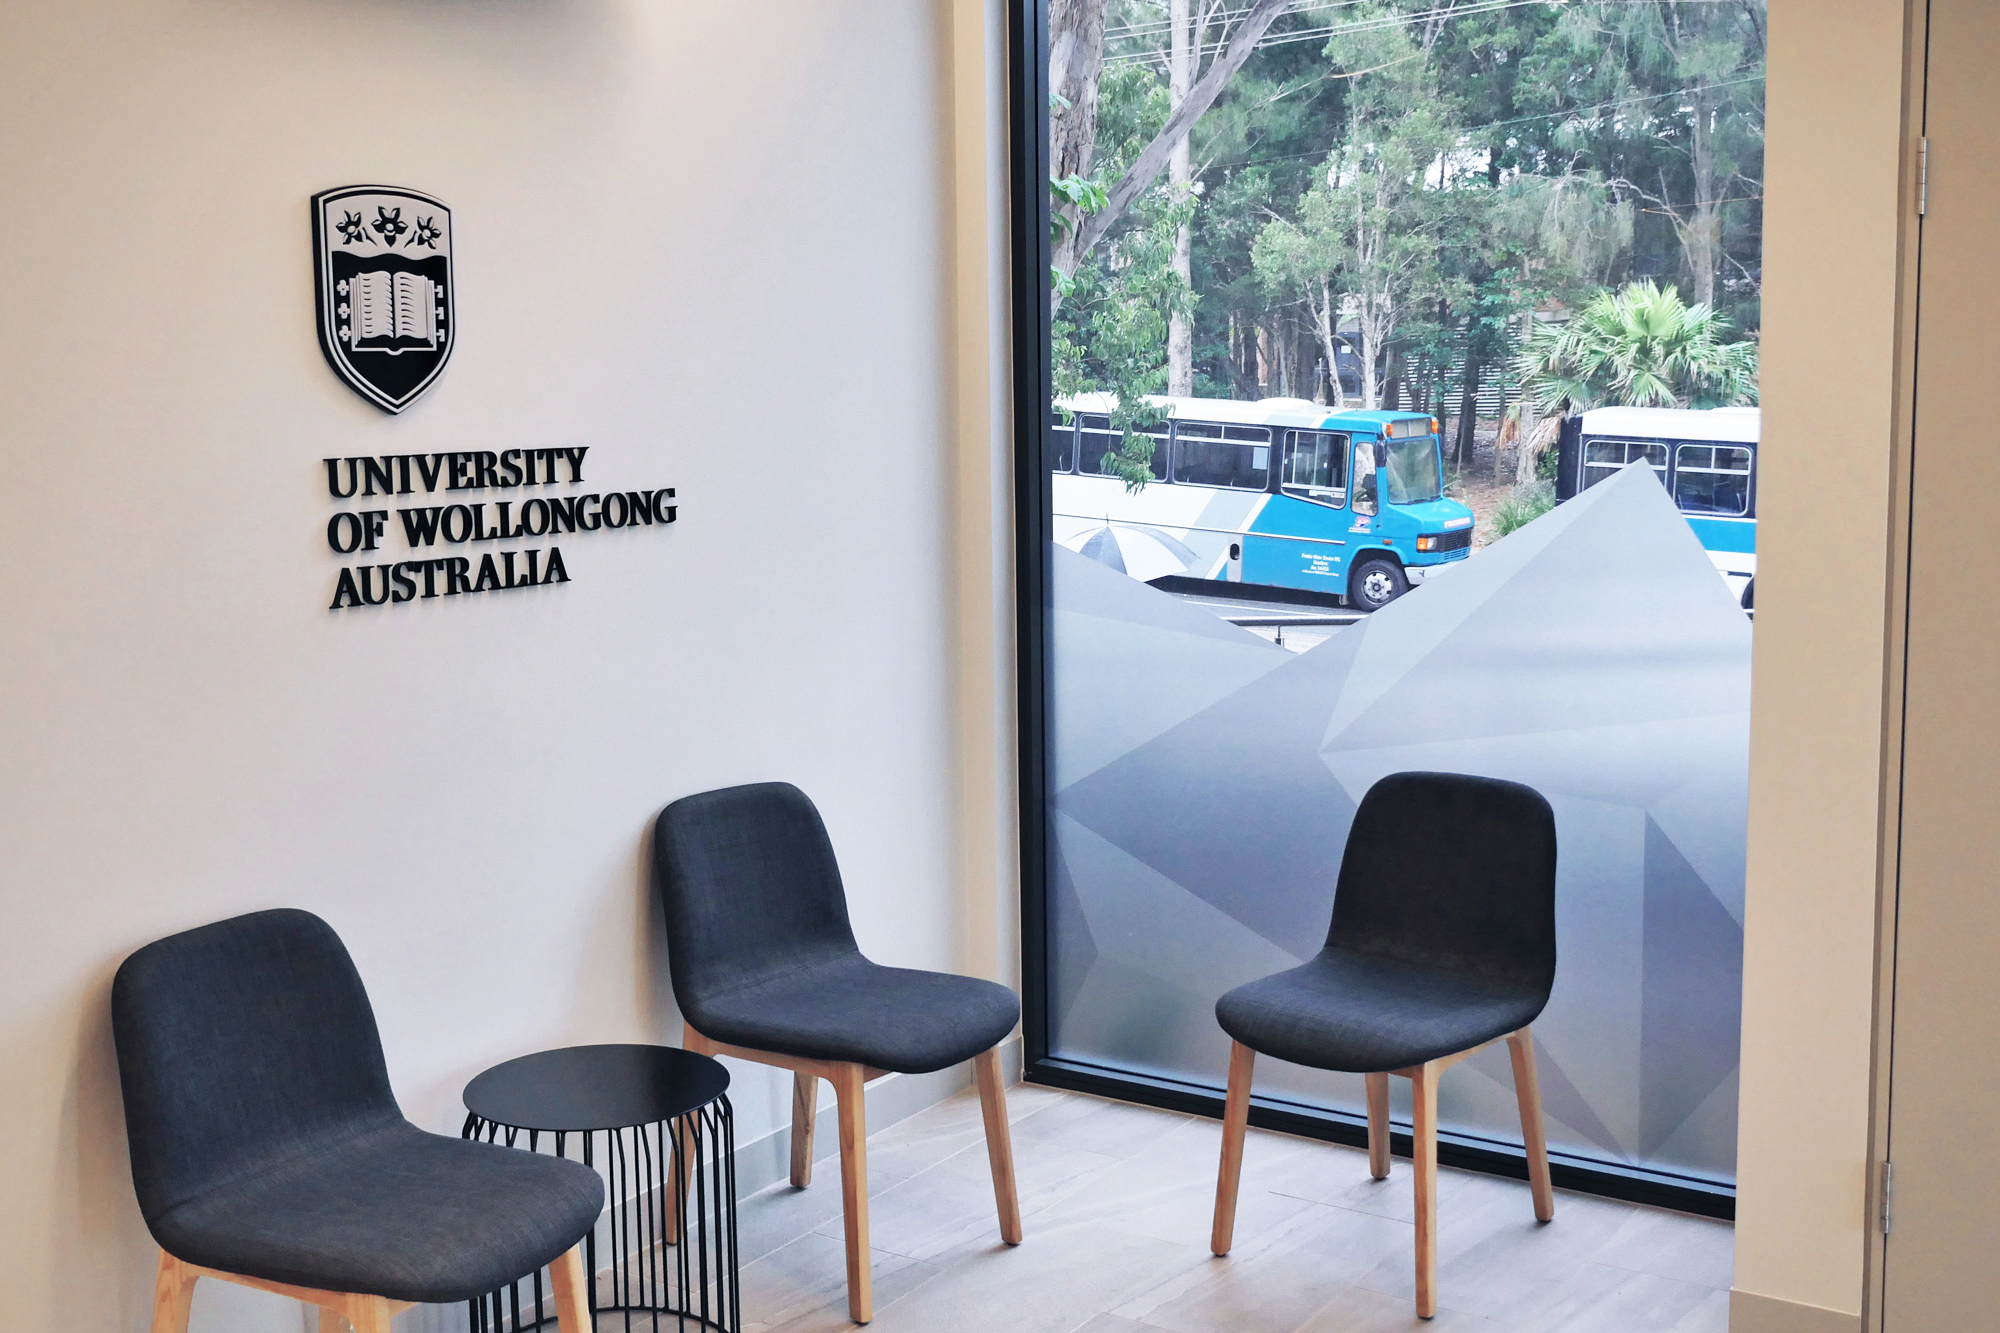 University of Wollongong - Foyer Sign Cut Out